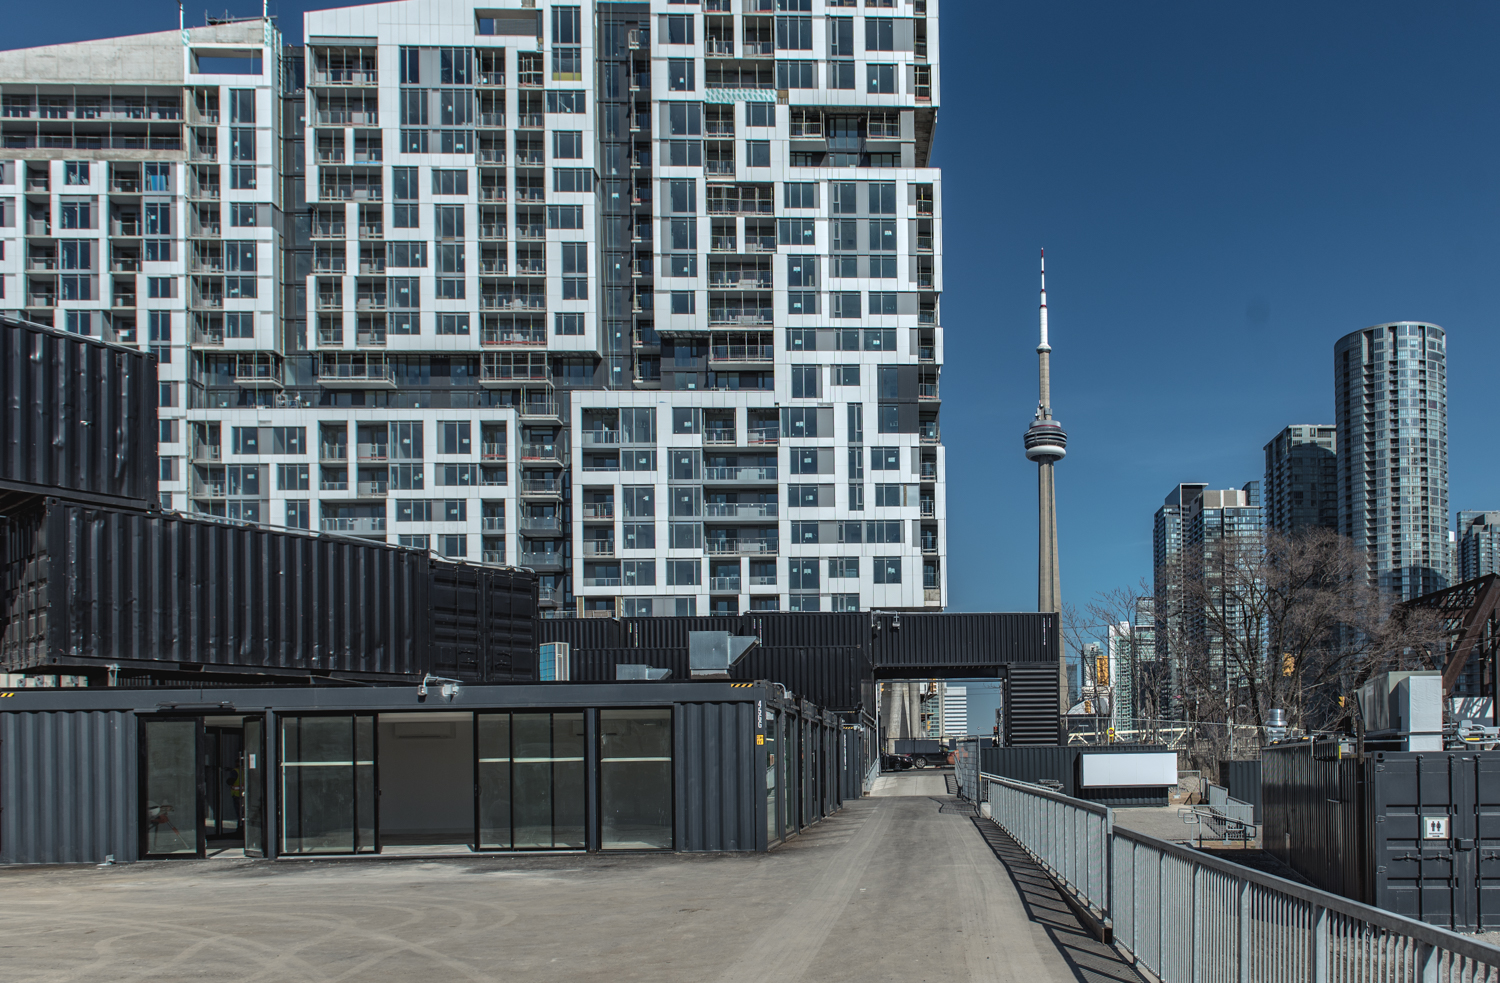 Looking eastward from the main gate towards the CN Tower photo: stackt market